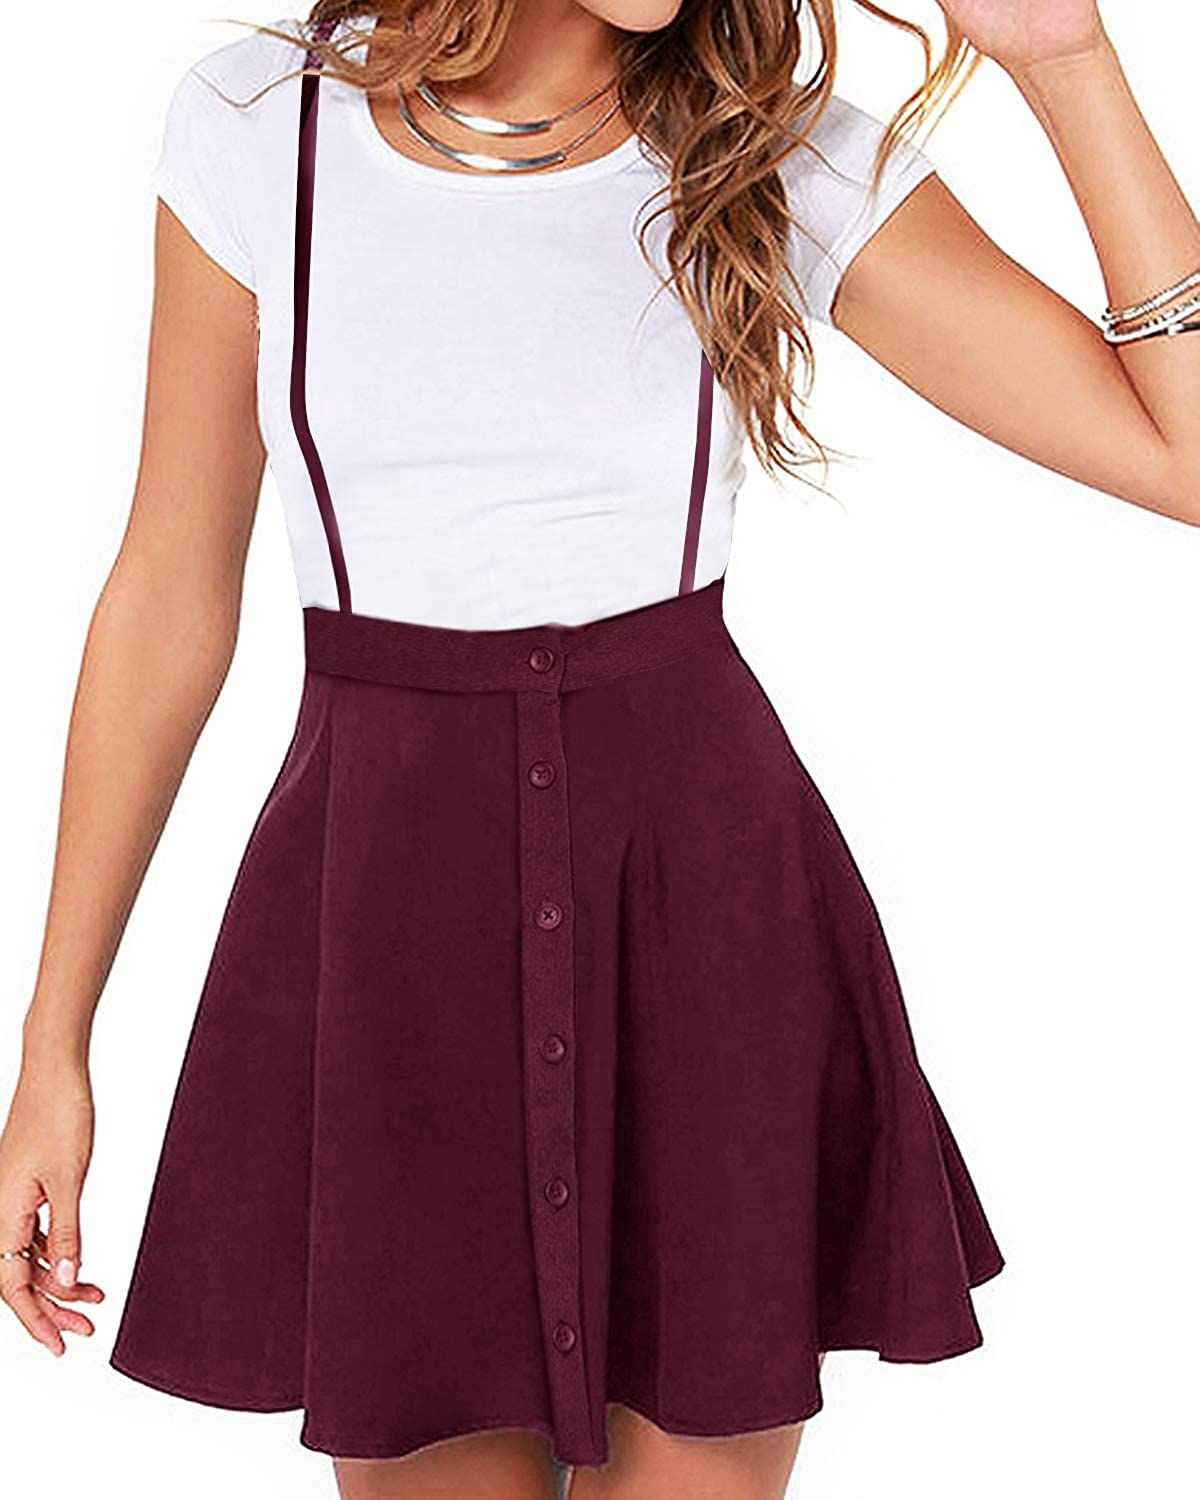 YOINS Overall Pinafore Dresses Luxury goods gift for M Women Button Design Pleated